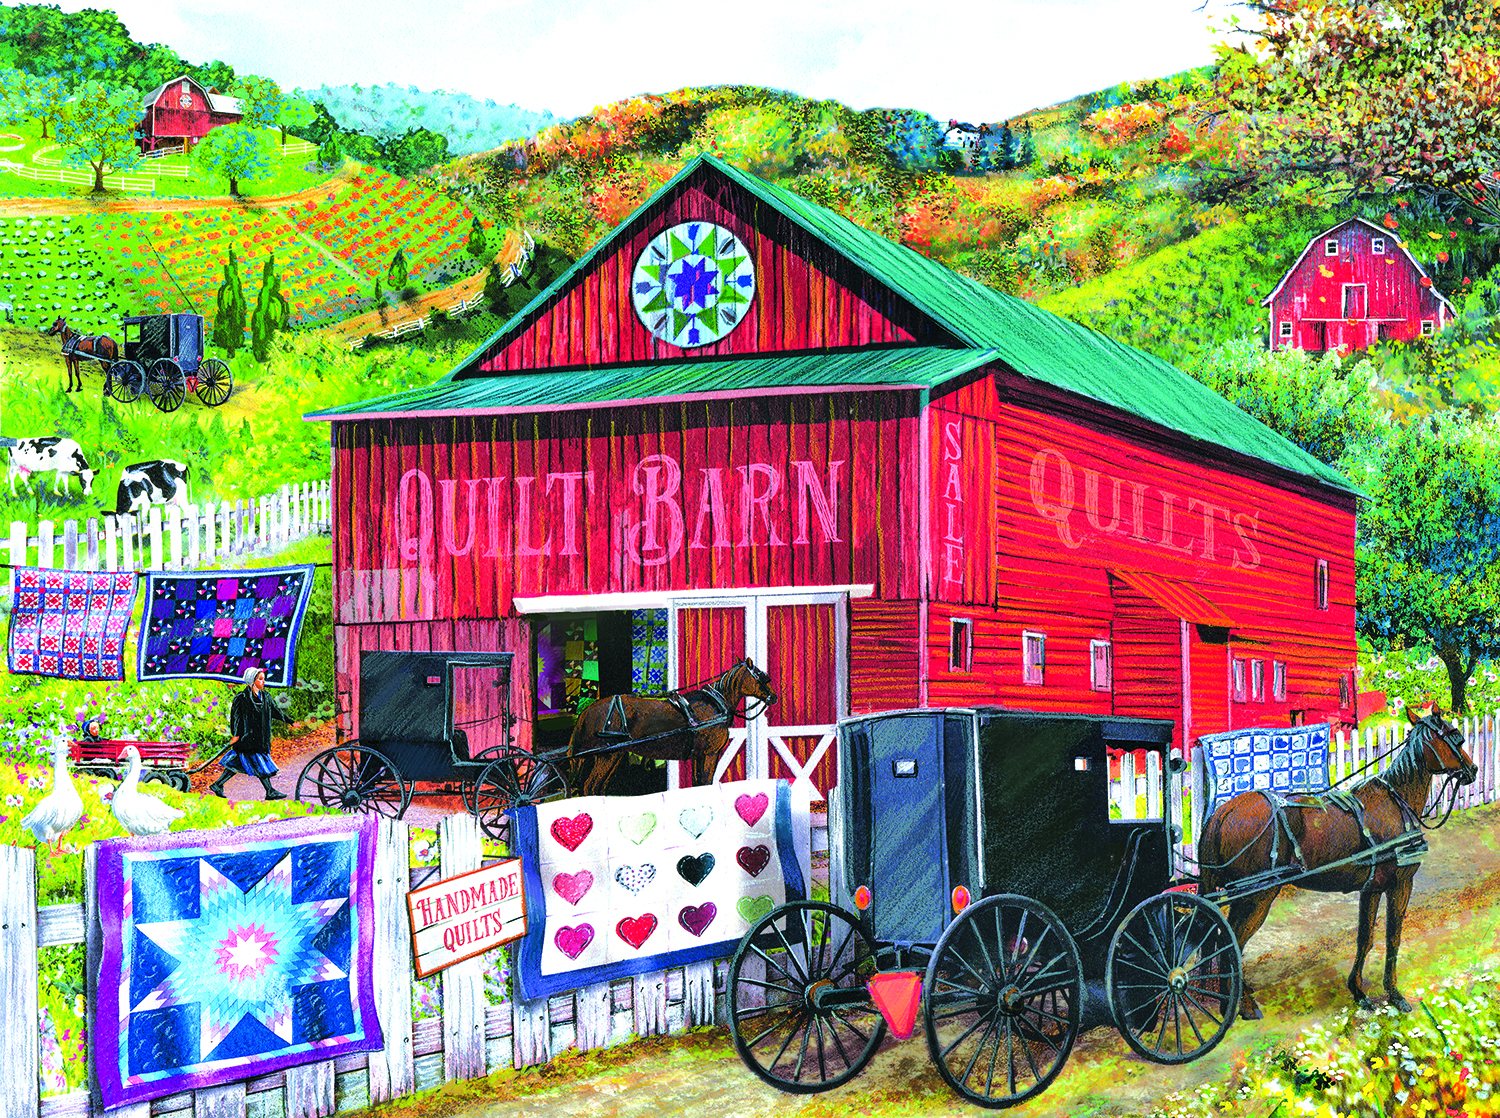 Stopping at The Quilt Barn 1000 pc Jigsaw Puzzle by SunsOut